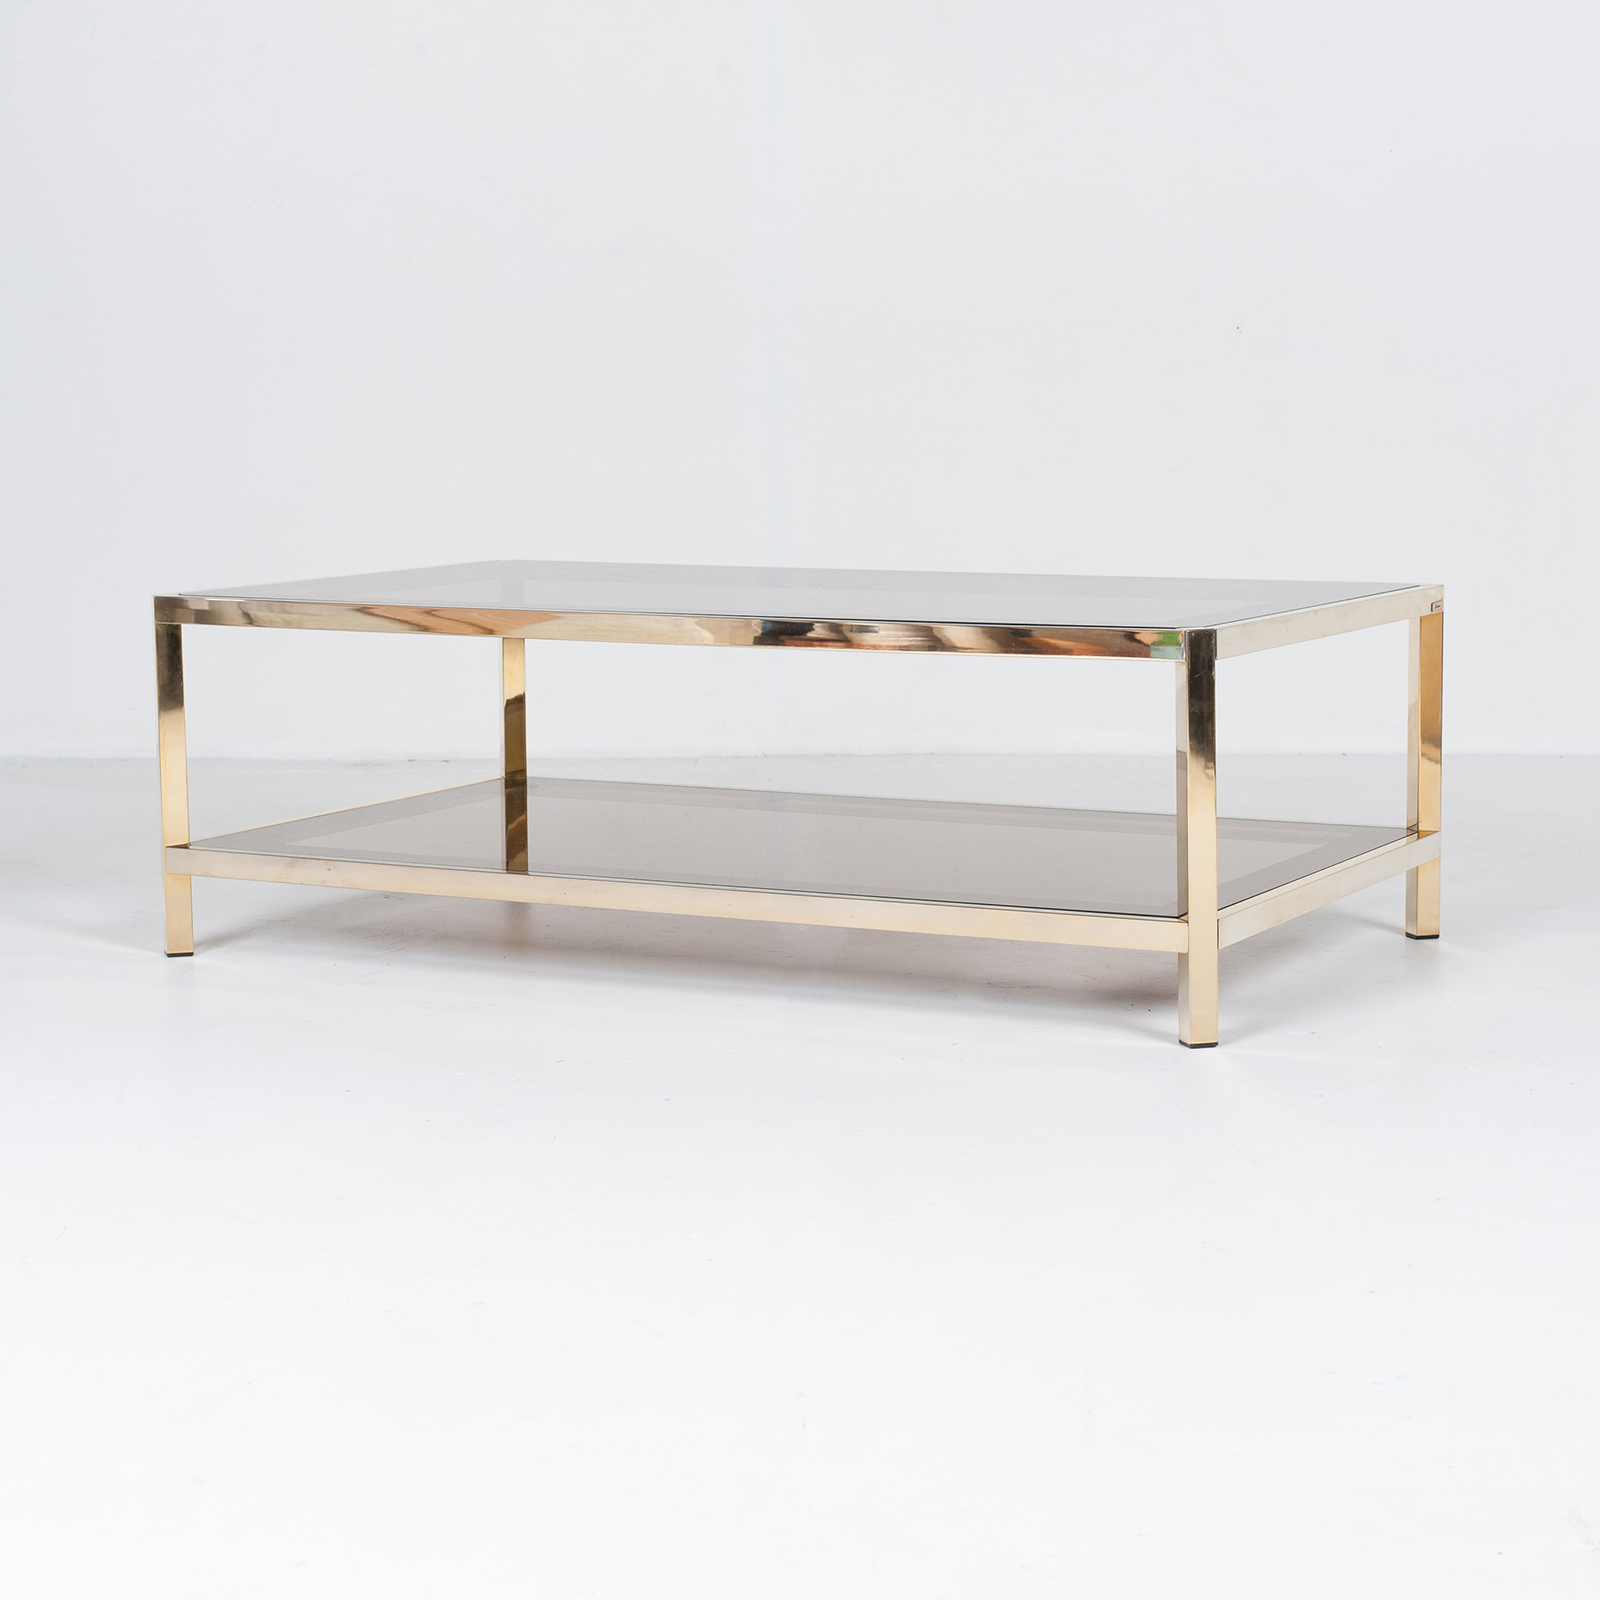 Rectangular Coffee Table By Pierre Cardin In Smoked Glass And Brass, 1960s, France21